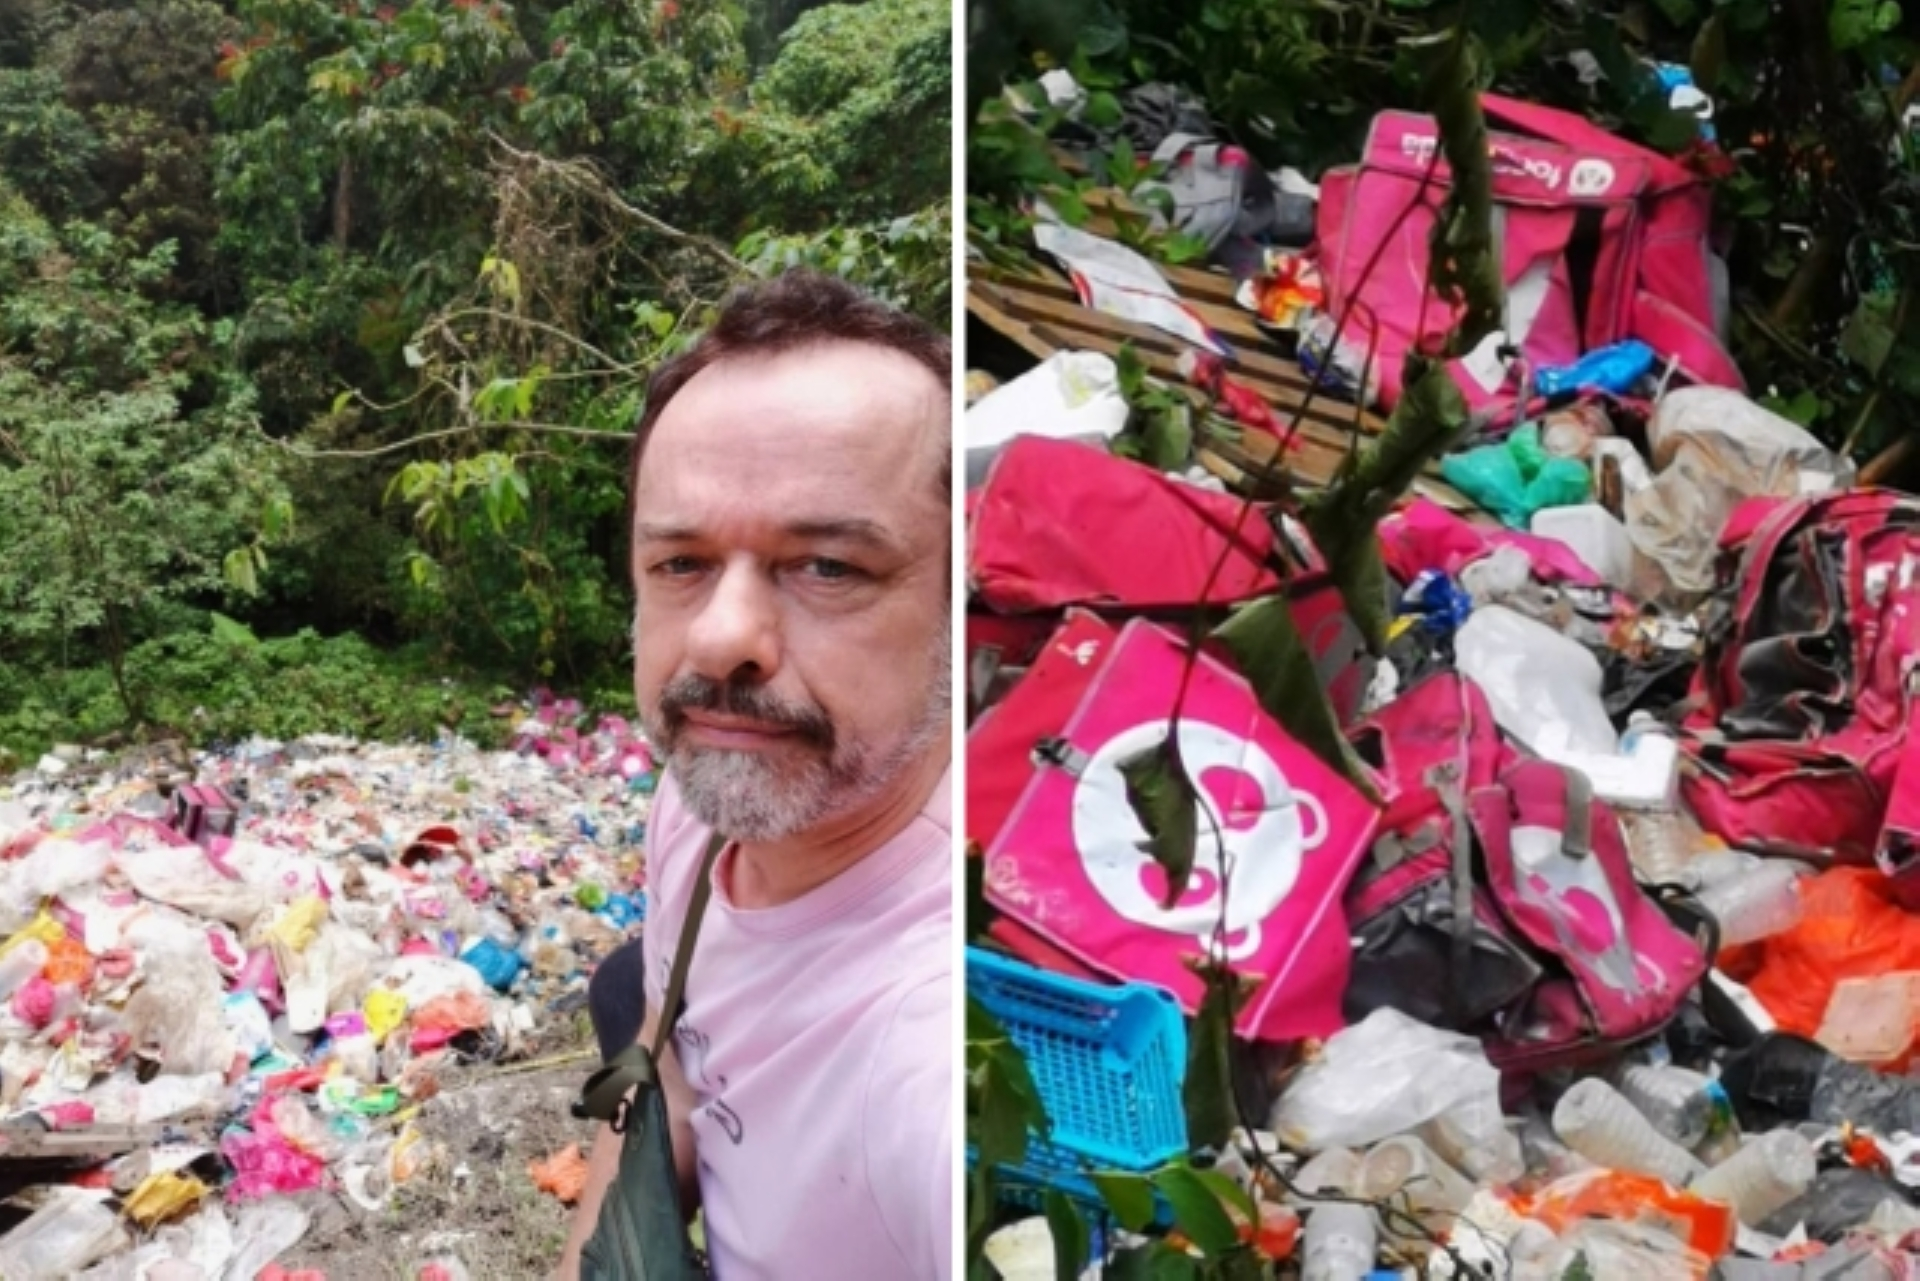 Hickson (left) discovered the many bags bearing the Foodpanda logo at an illegal dumpsite in Gombak. - Photos courtesy of Prof Dr Andy Hickson.